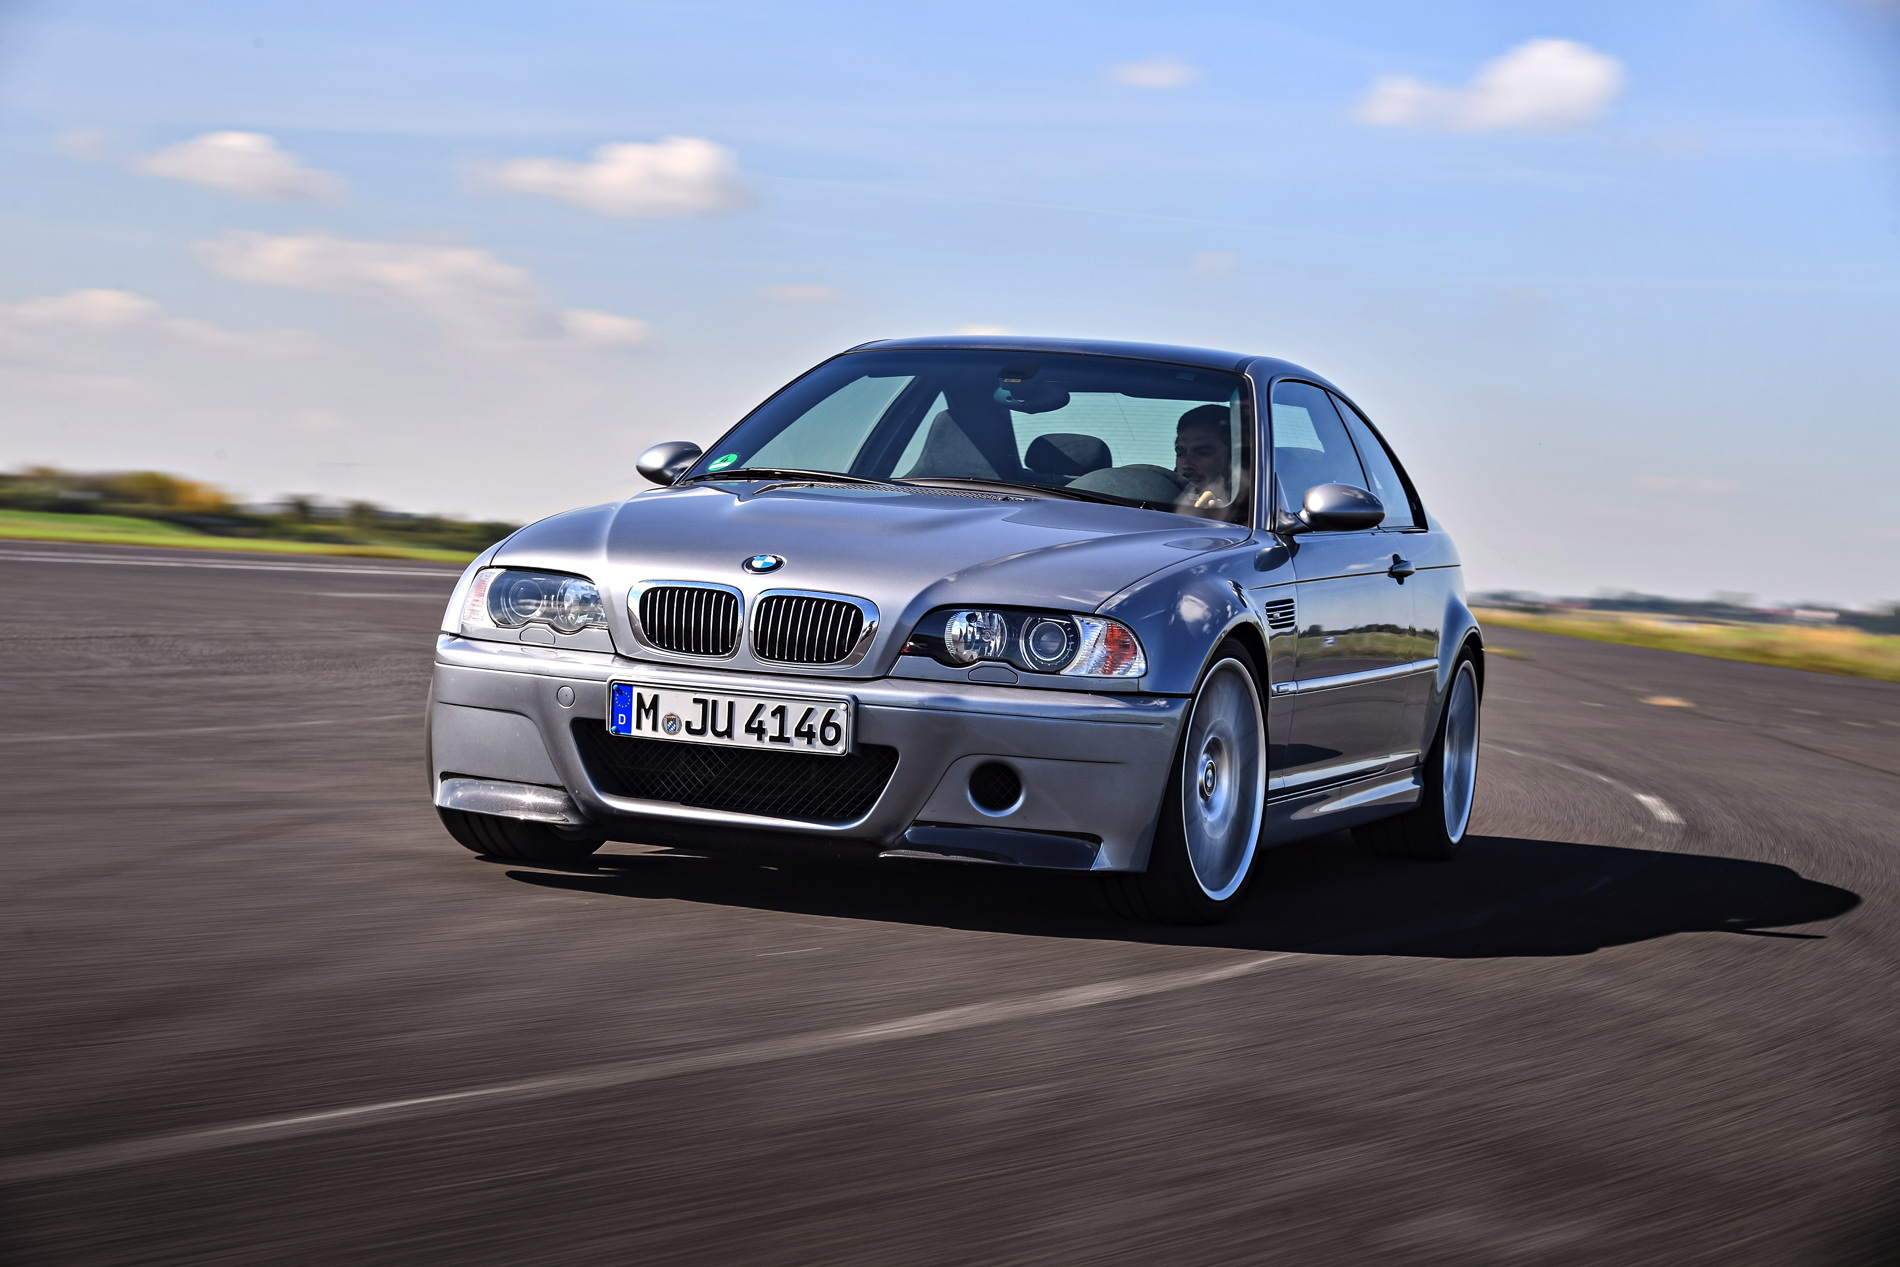 Make A Car >> The One And Only: BMW E46 M3 CSL